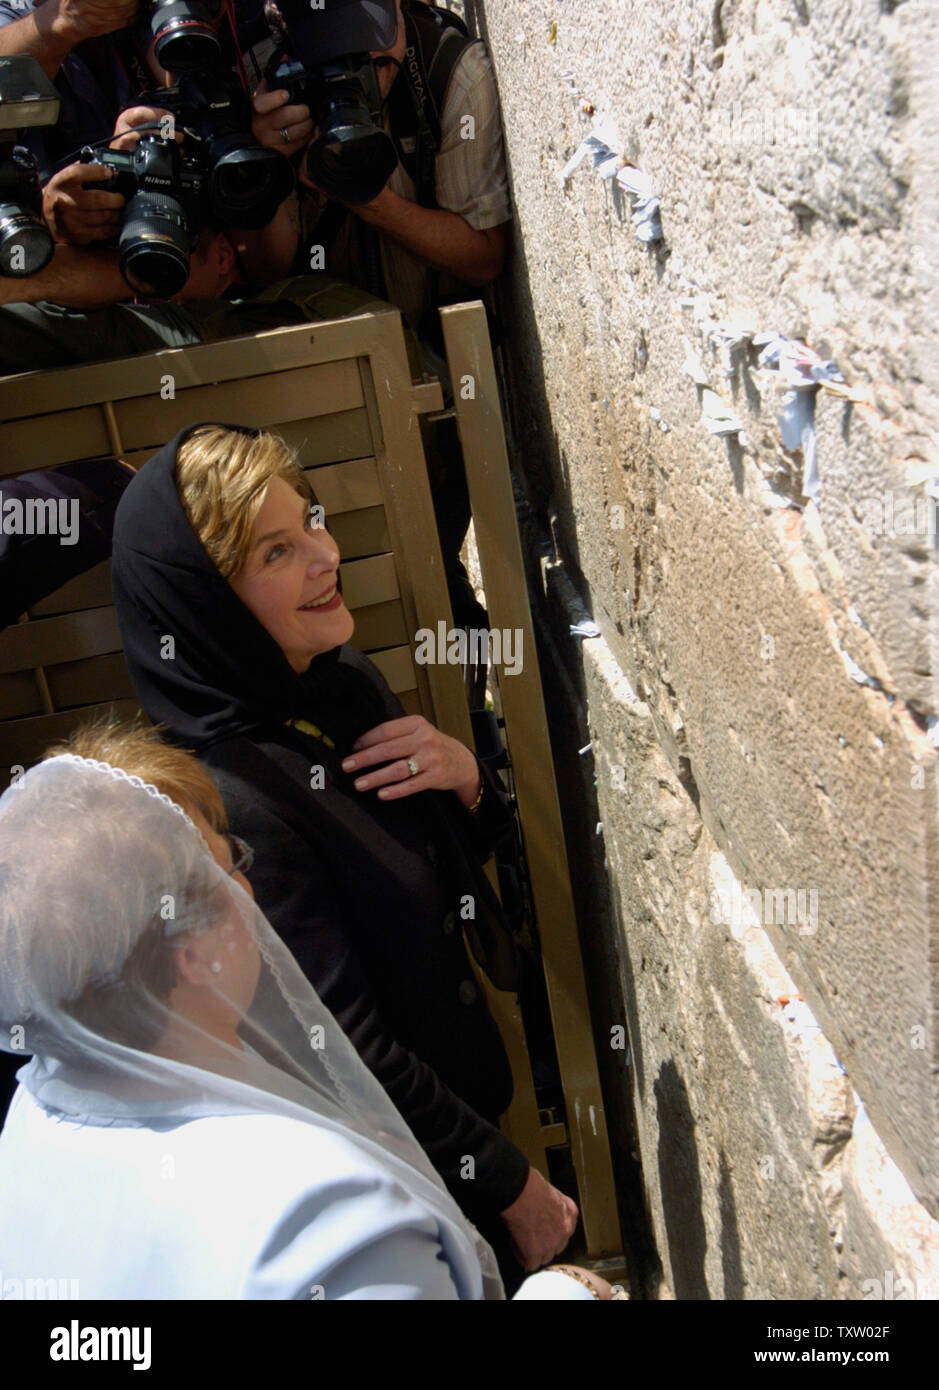 Israeli First Lady Gila Katsav (L), stands by US First Lady Laura Bush at the Western Wall, Judaism's holiest site, in the Old City of Jerusalem, May 22, 2005. Mrs. Bush is visiting Israel as part of a six day tour in the region, aimed at advancing women's rights in the Middle East. (UPI Photo/Debbie Hill) - Stock Image